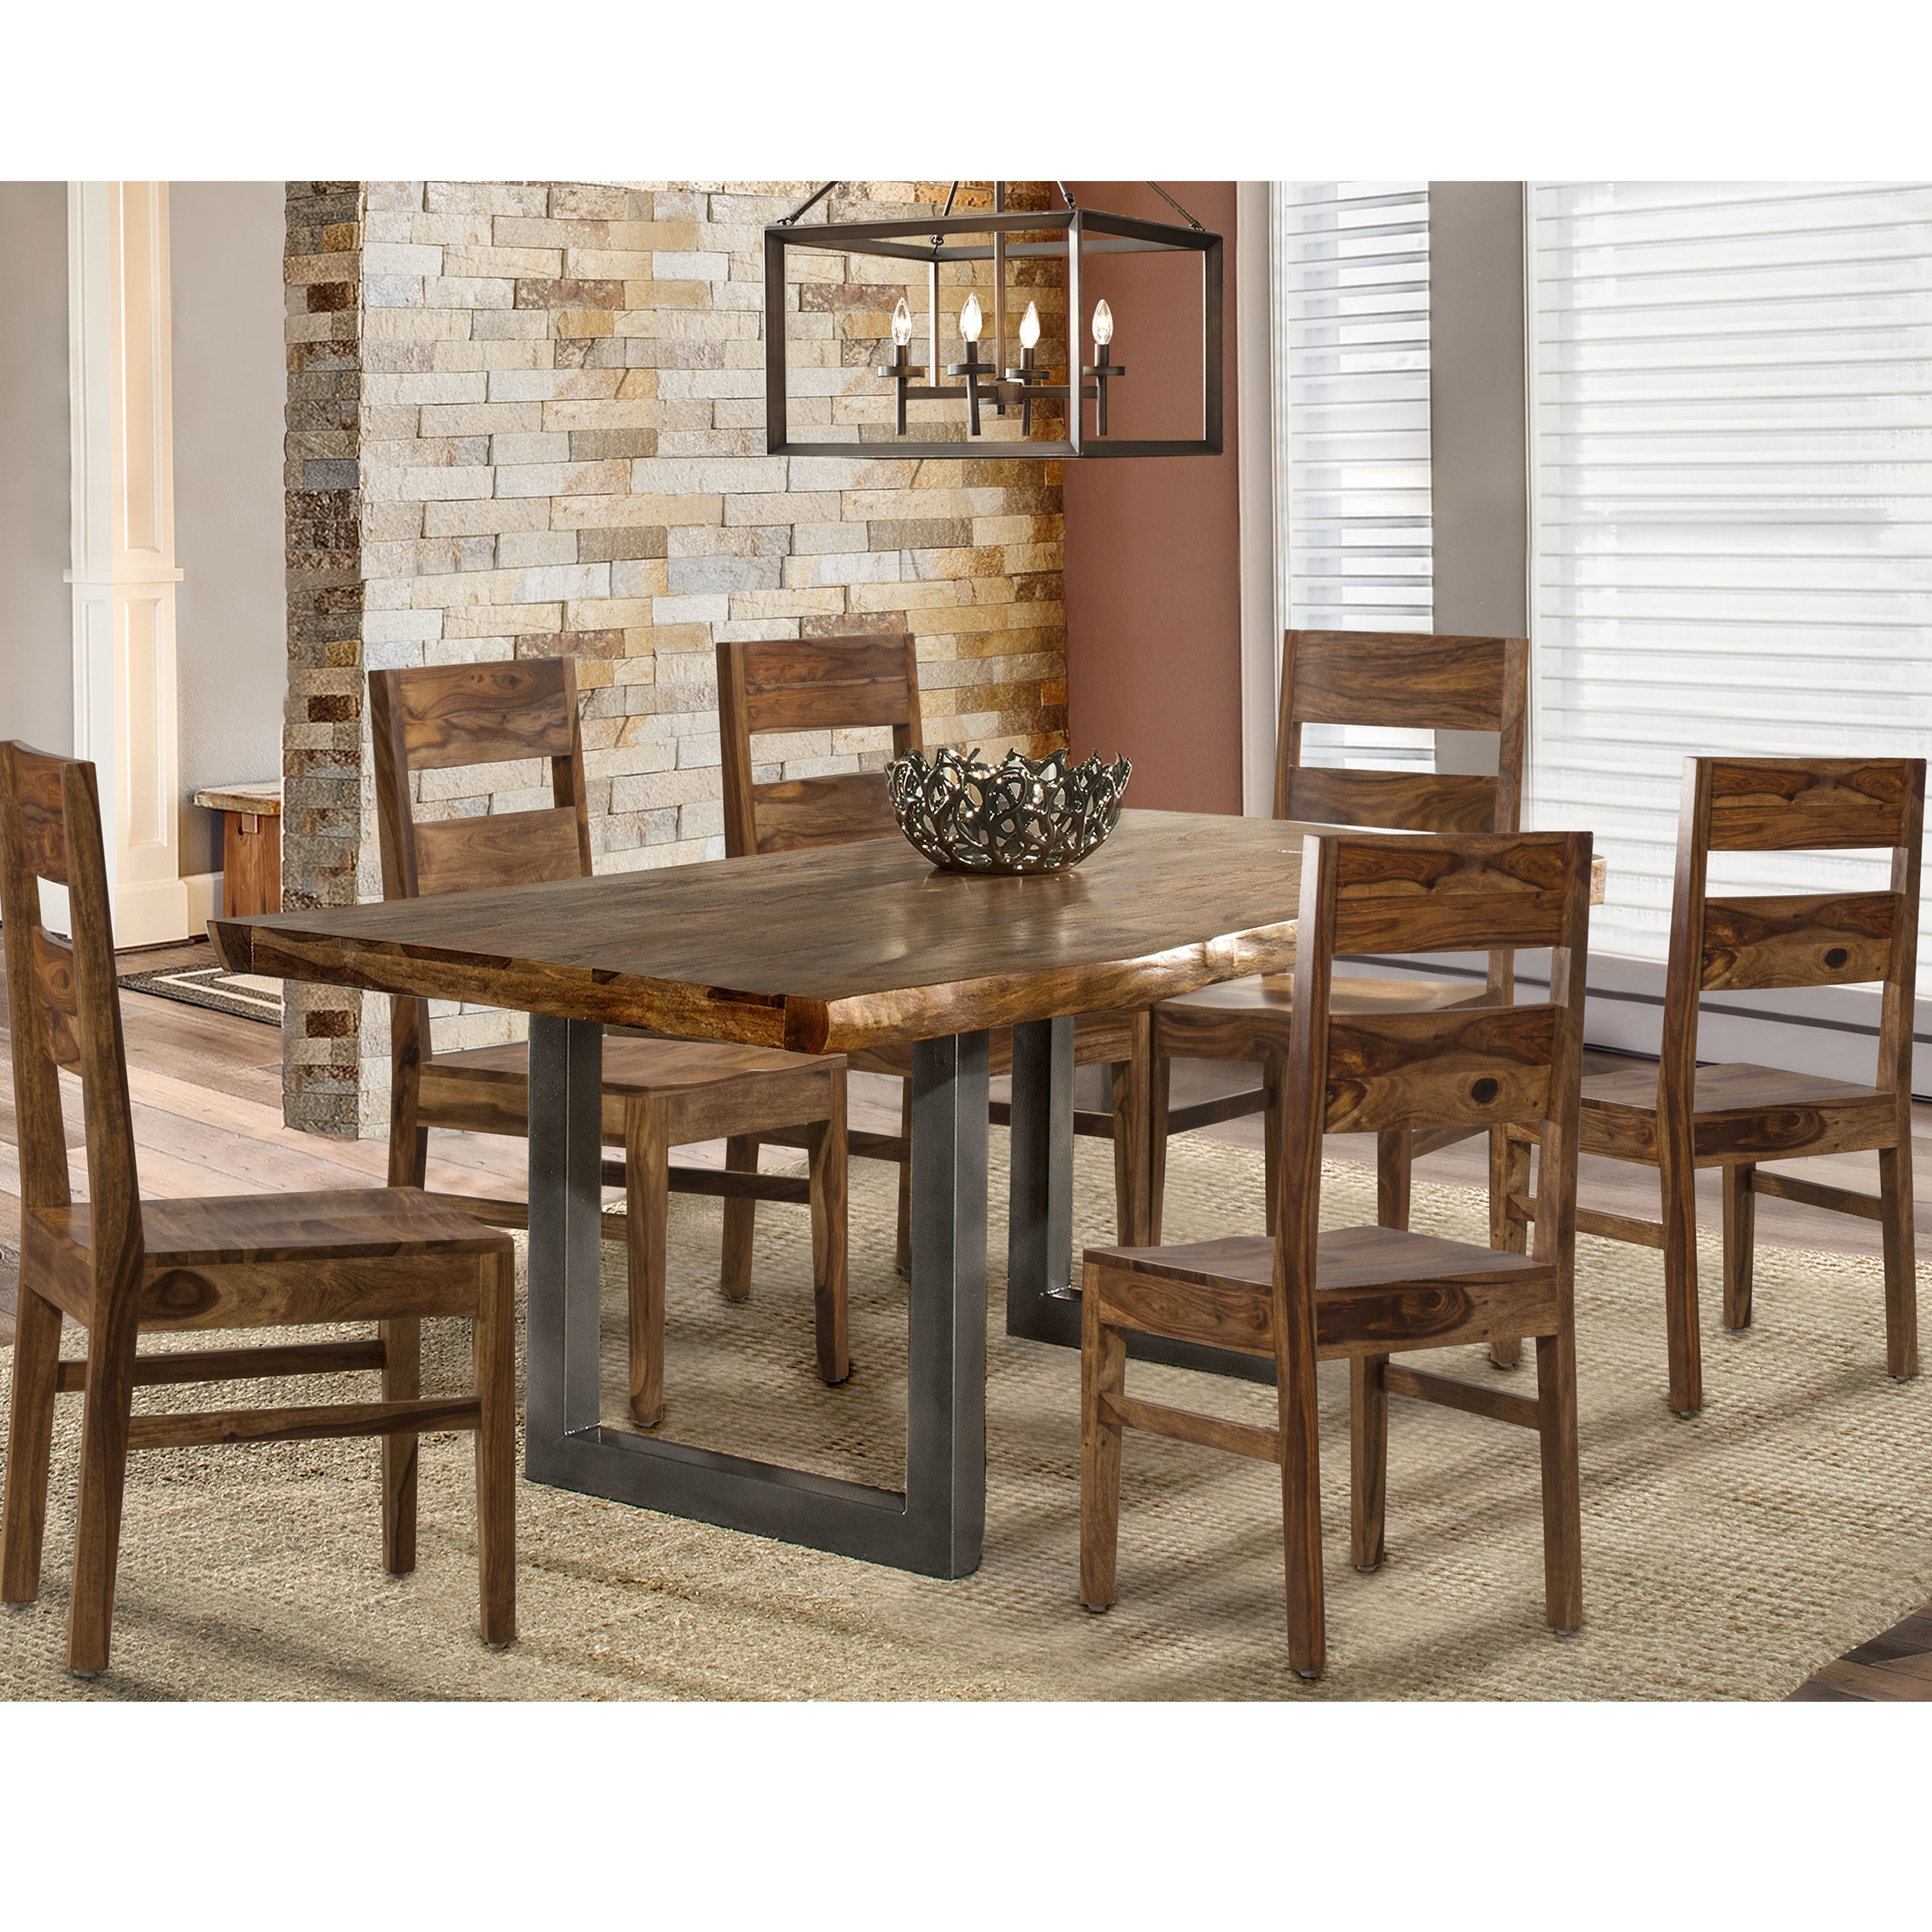 Hillsdale Emerson 7 Piece Dining Set in Natural Sheesham